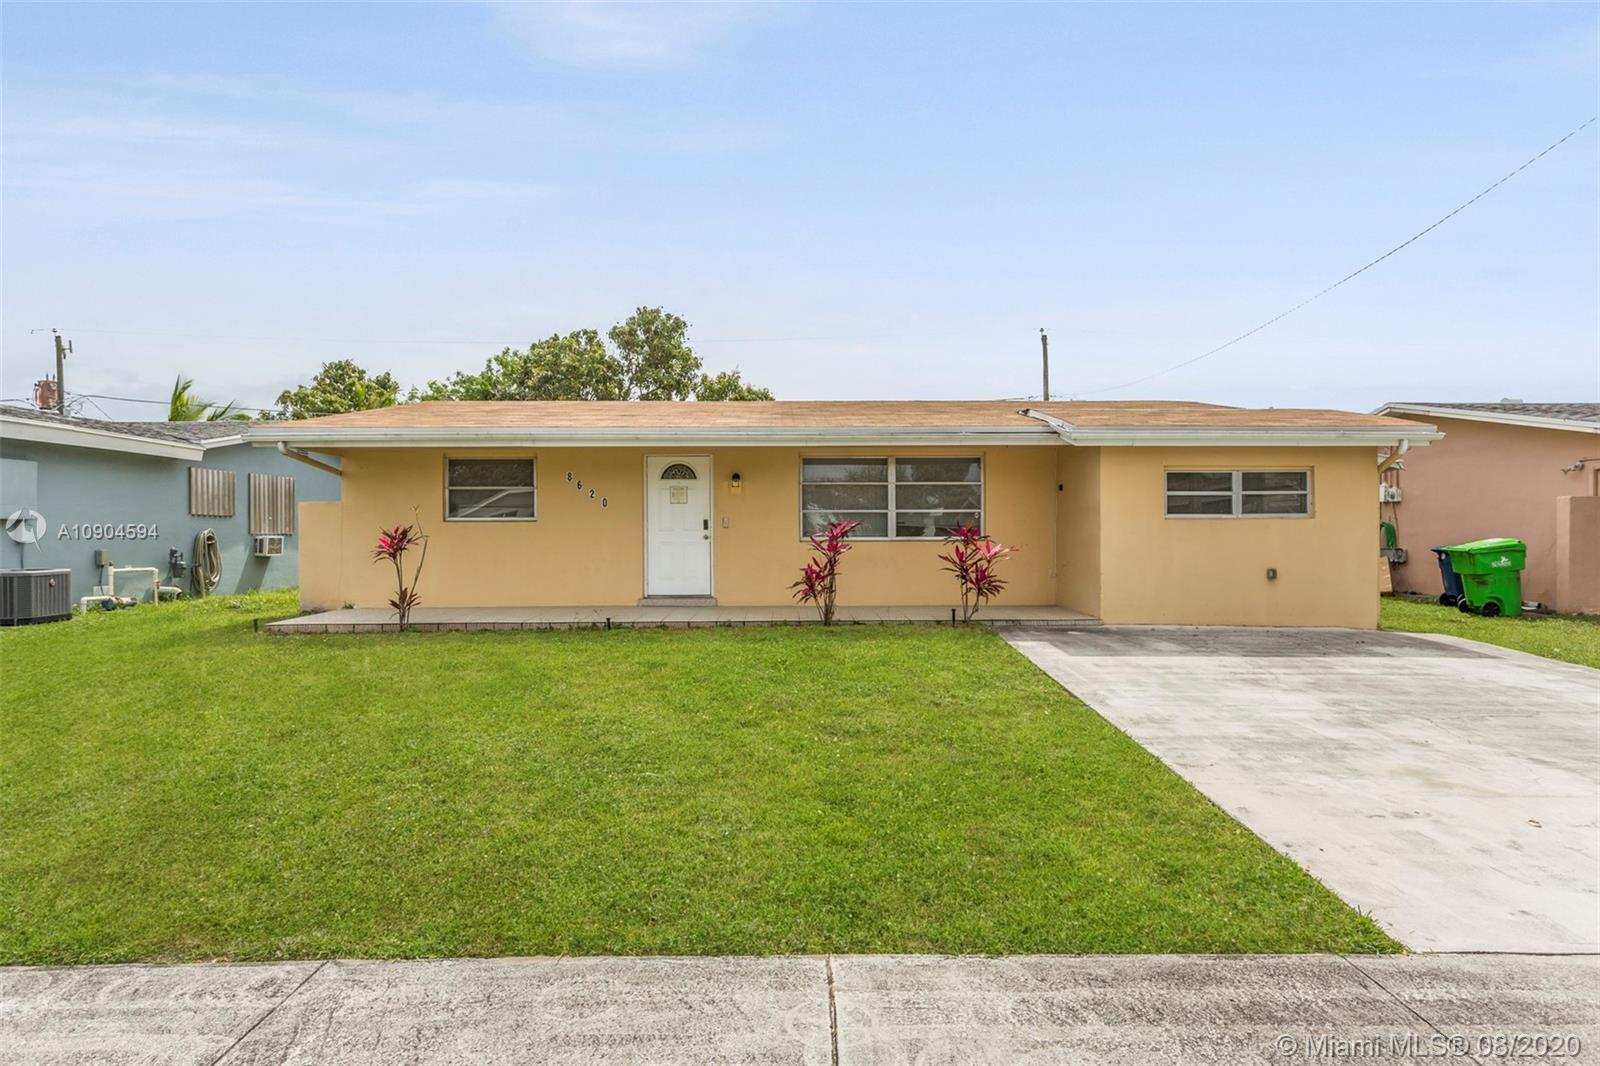 This 3 bedroom, 2.5 bathroom home is a great opportunity to move into the Fort Lauderdale area! Enjoy the multiple living spaces and dining spaces that make hosting a breeze! The backyard is completely fenced in and a great area to garden or hang out. Check it out for yourself!